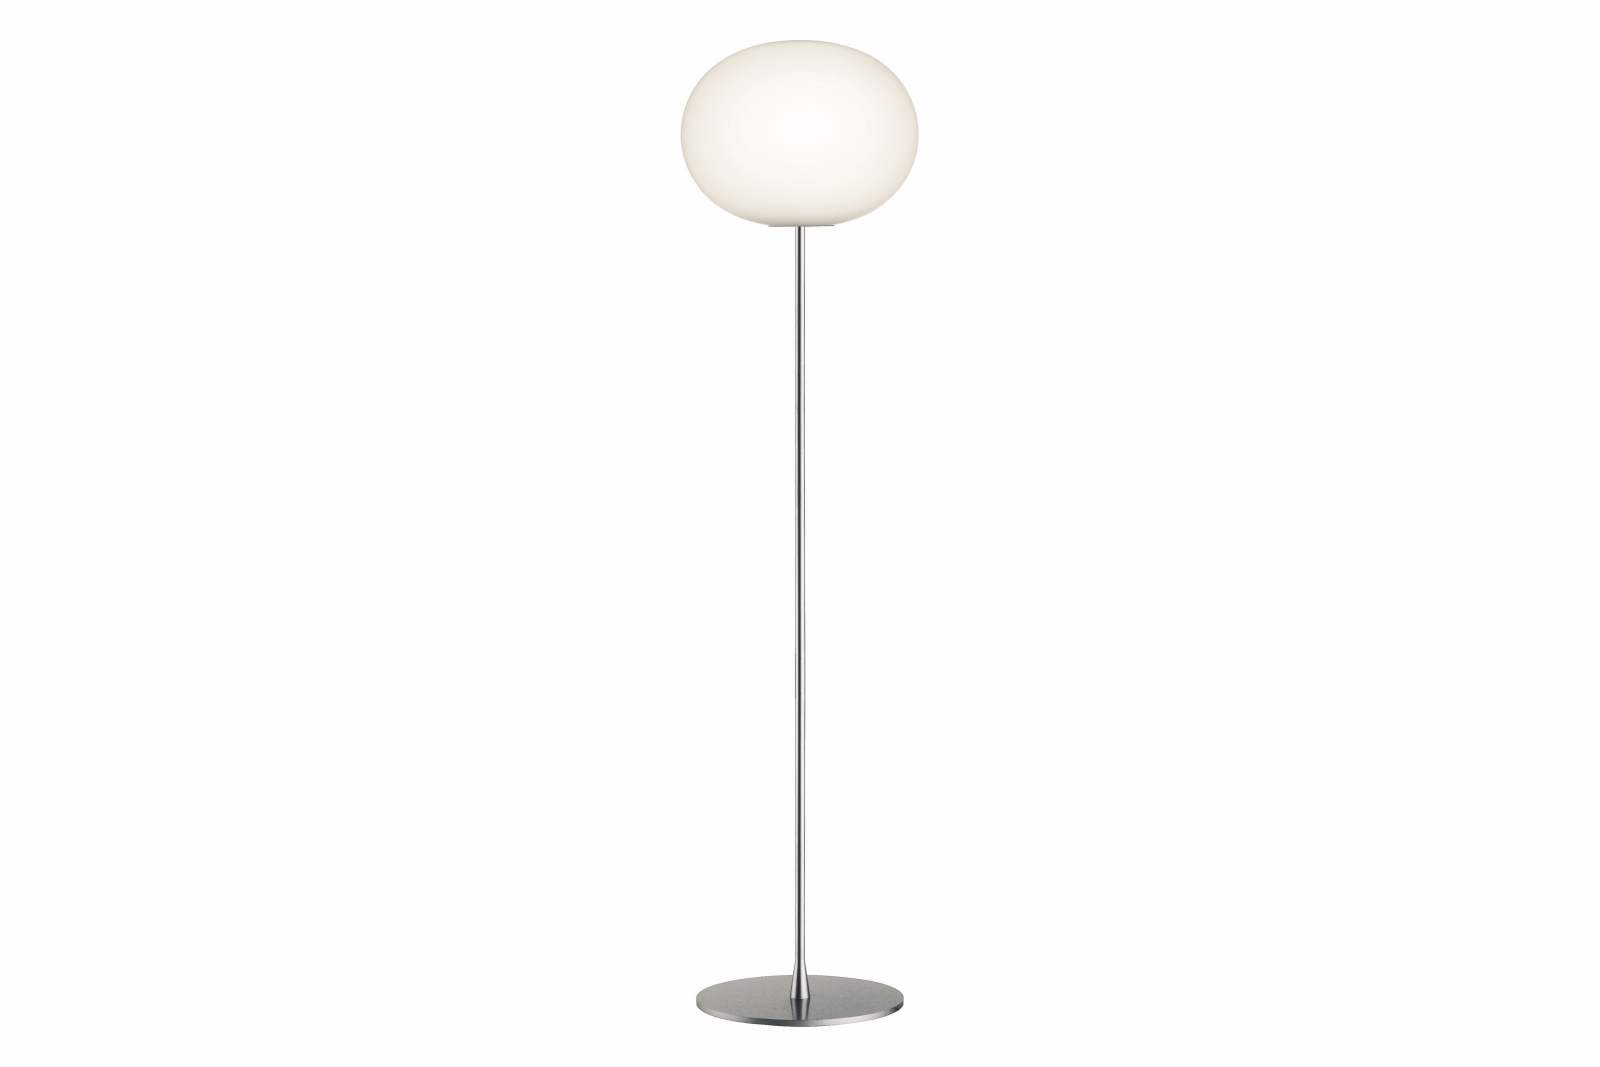 Glo-Ball F Floor Lamp F1, Small, Dimmer